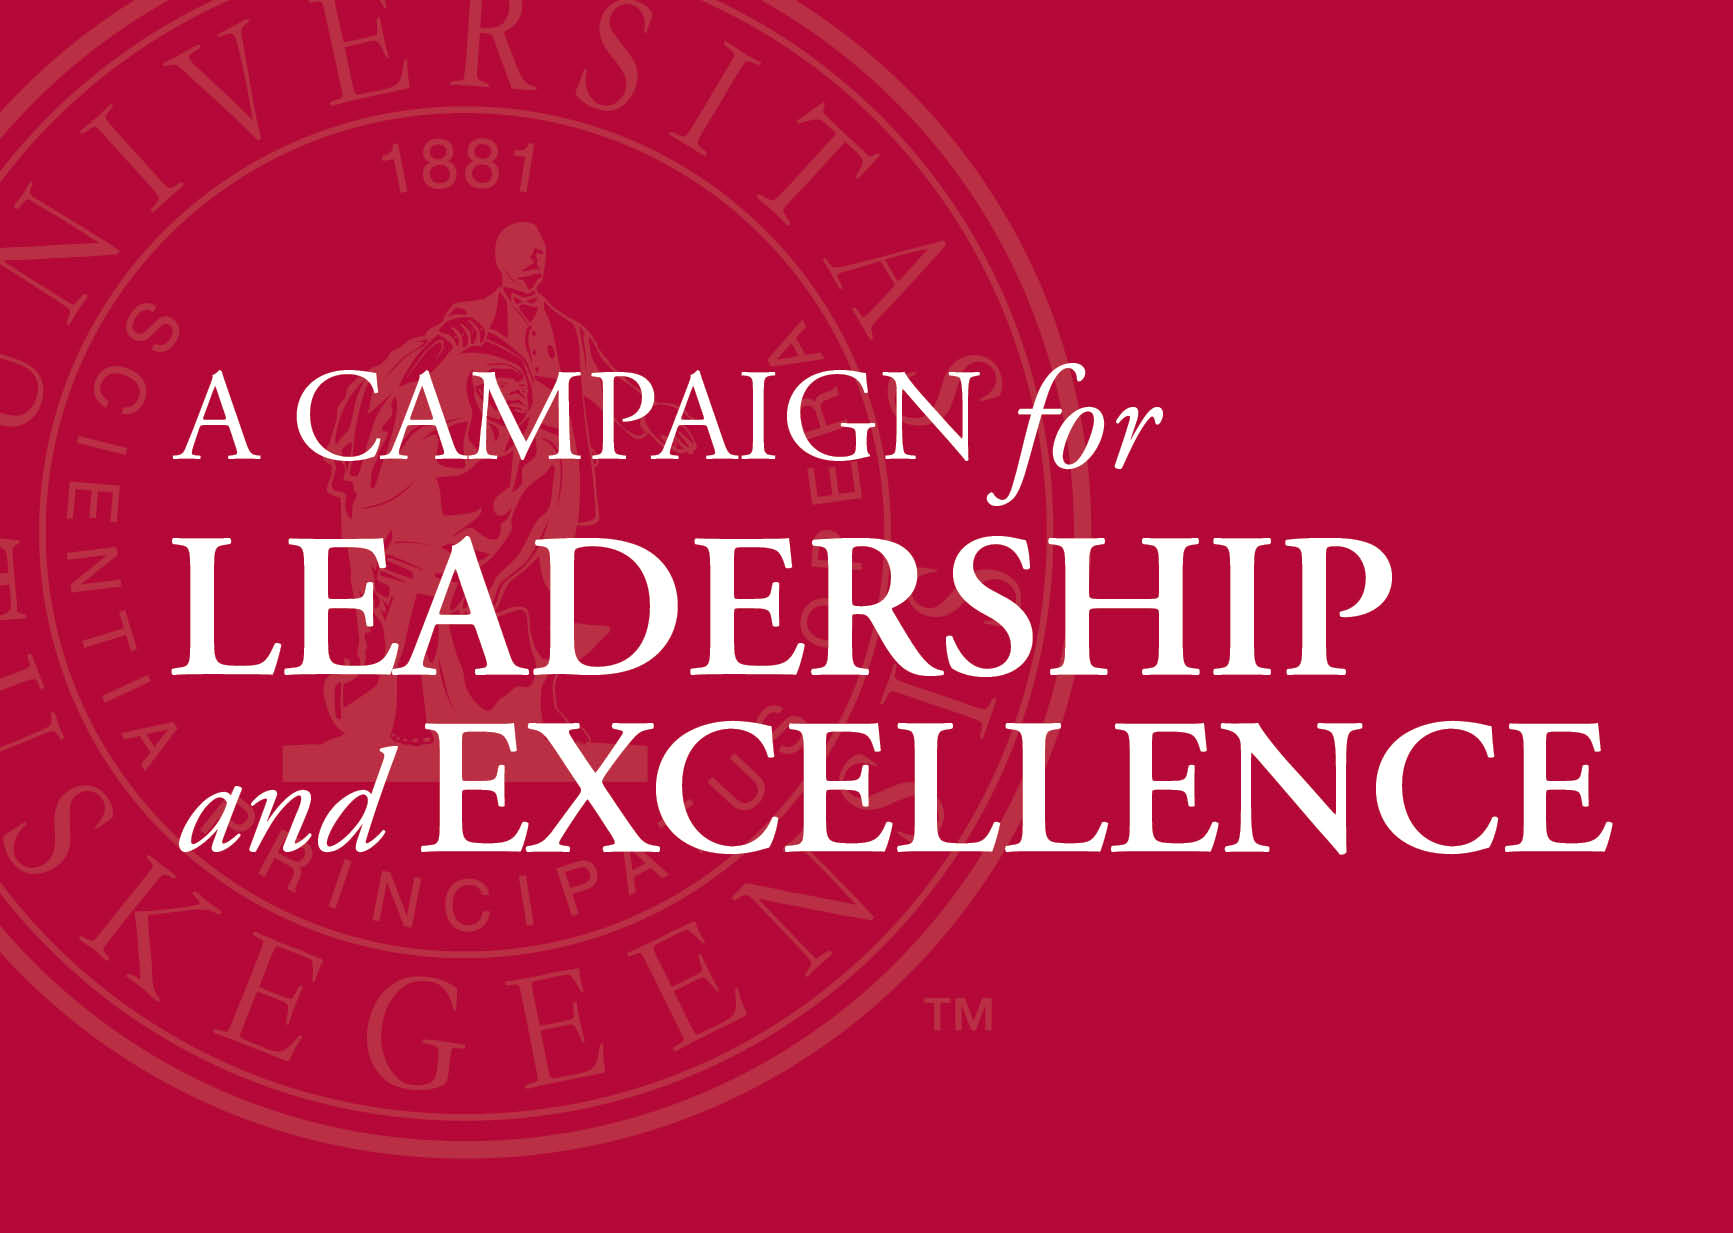 banner: campaign for leadership and excellence